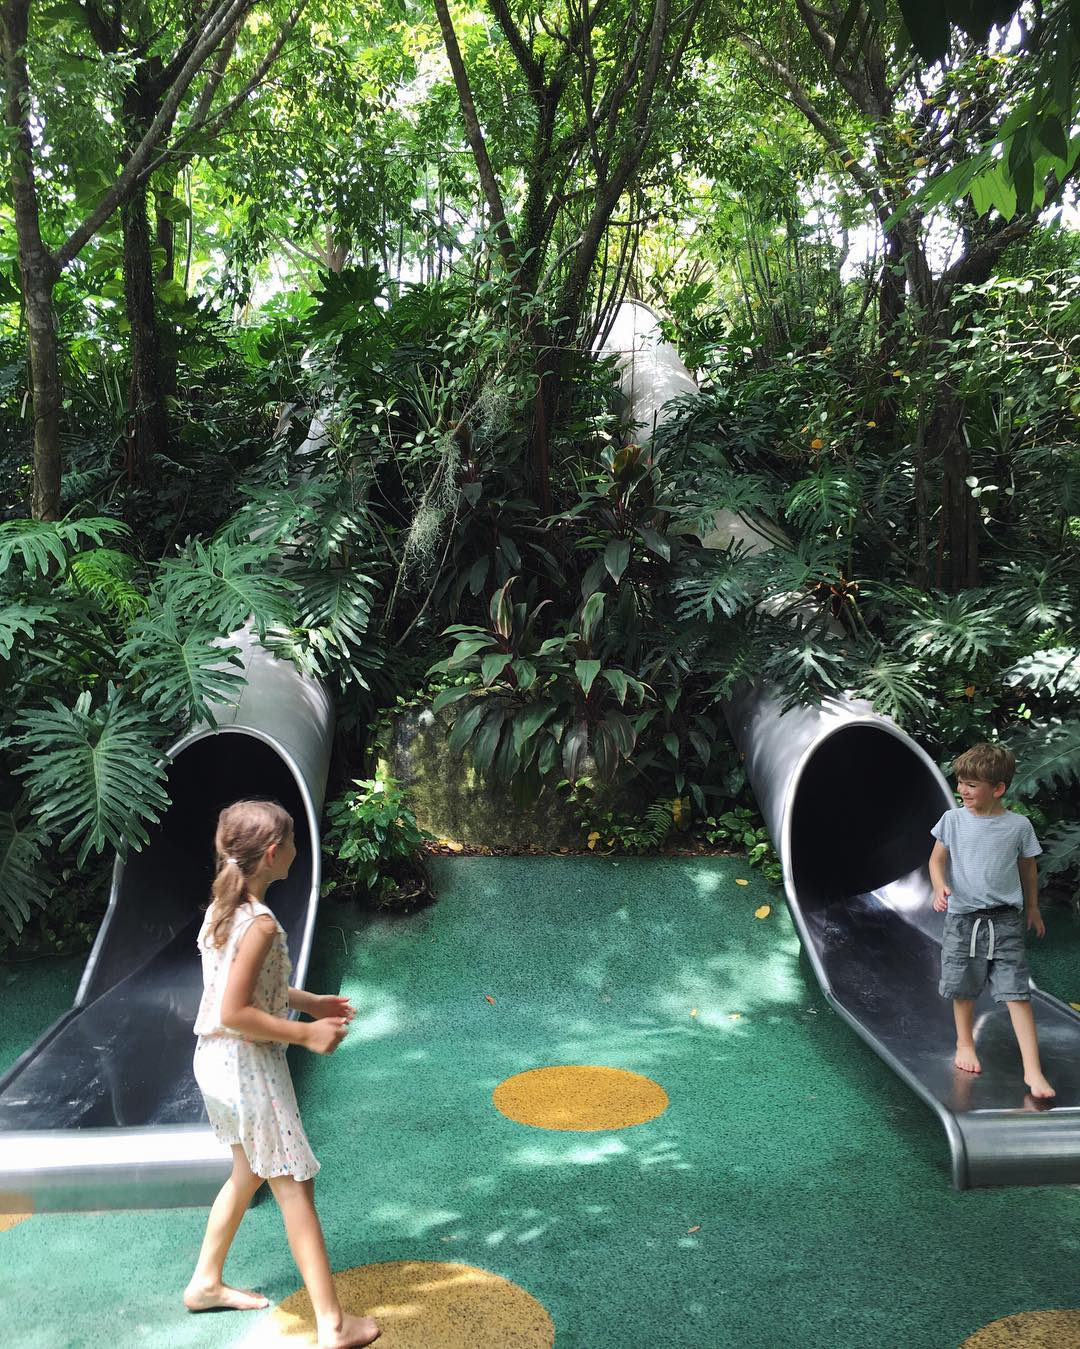 Inspirasi Wisata Traveling Singapore Garden by the Bay Far east organization children's garden